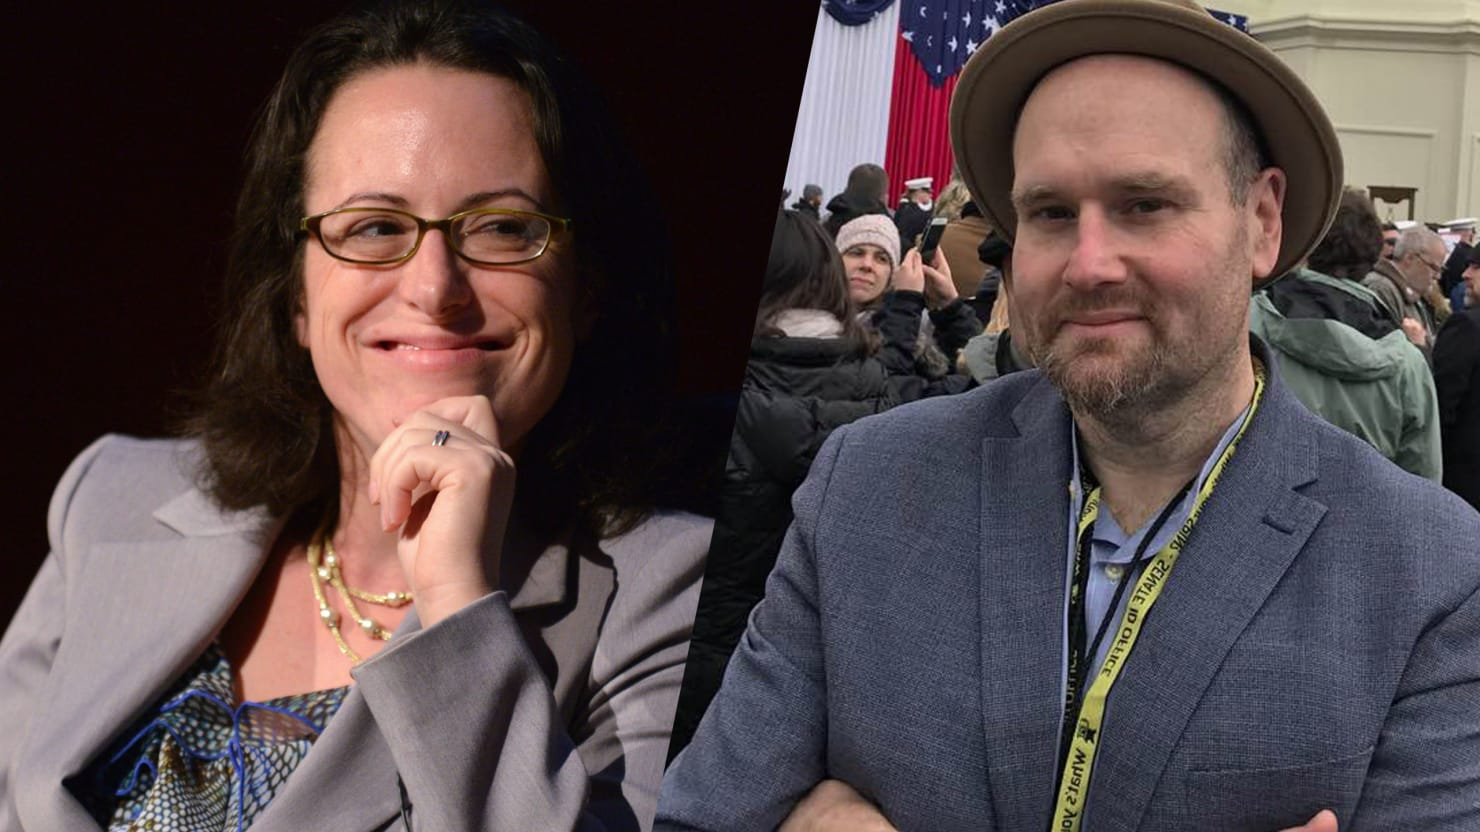 Glenn Thrush New York Times >> The New York Times' Dynamic Duo Who Put Trump on the Couch